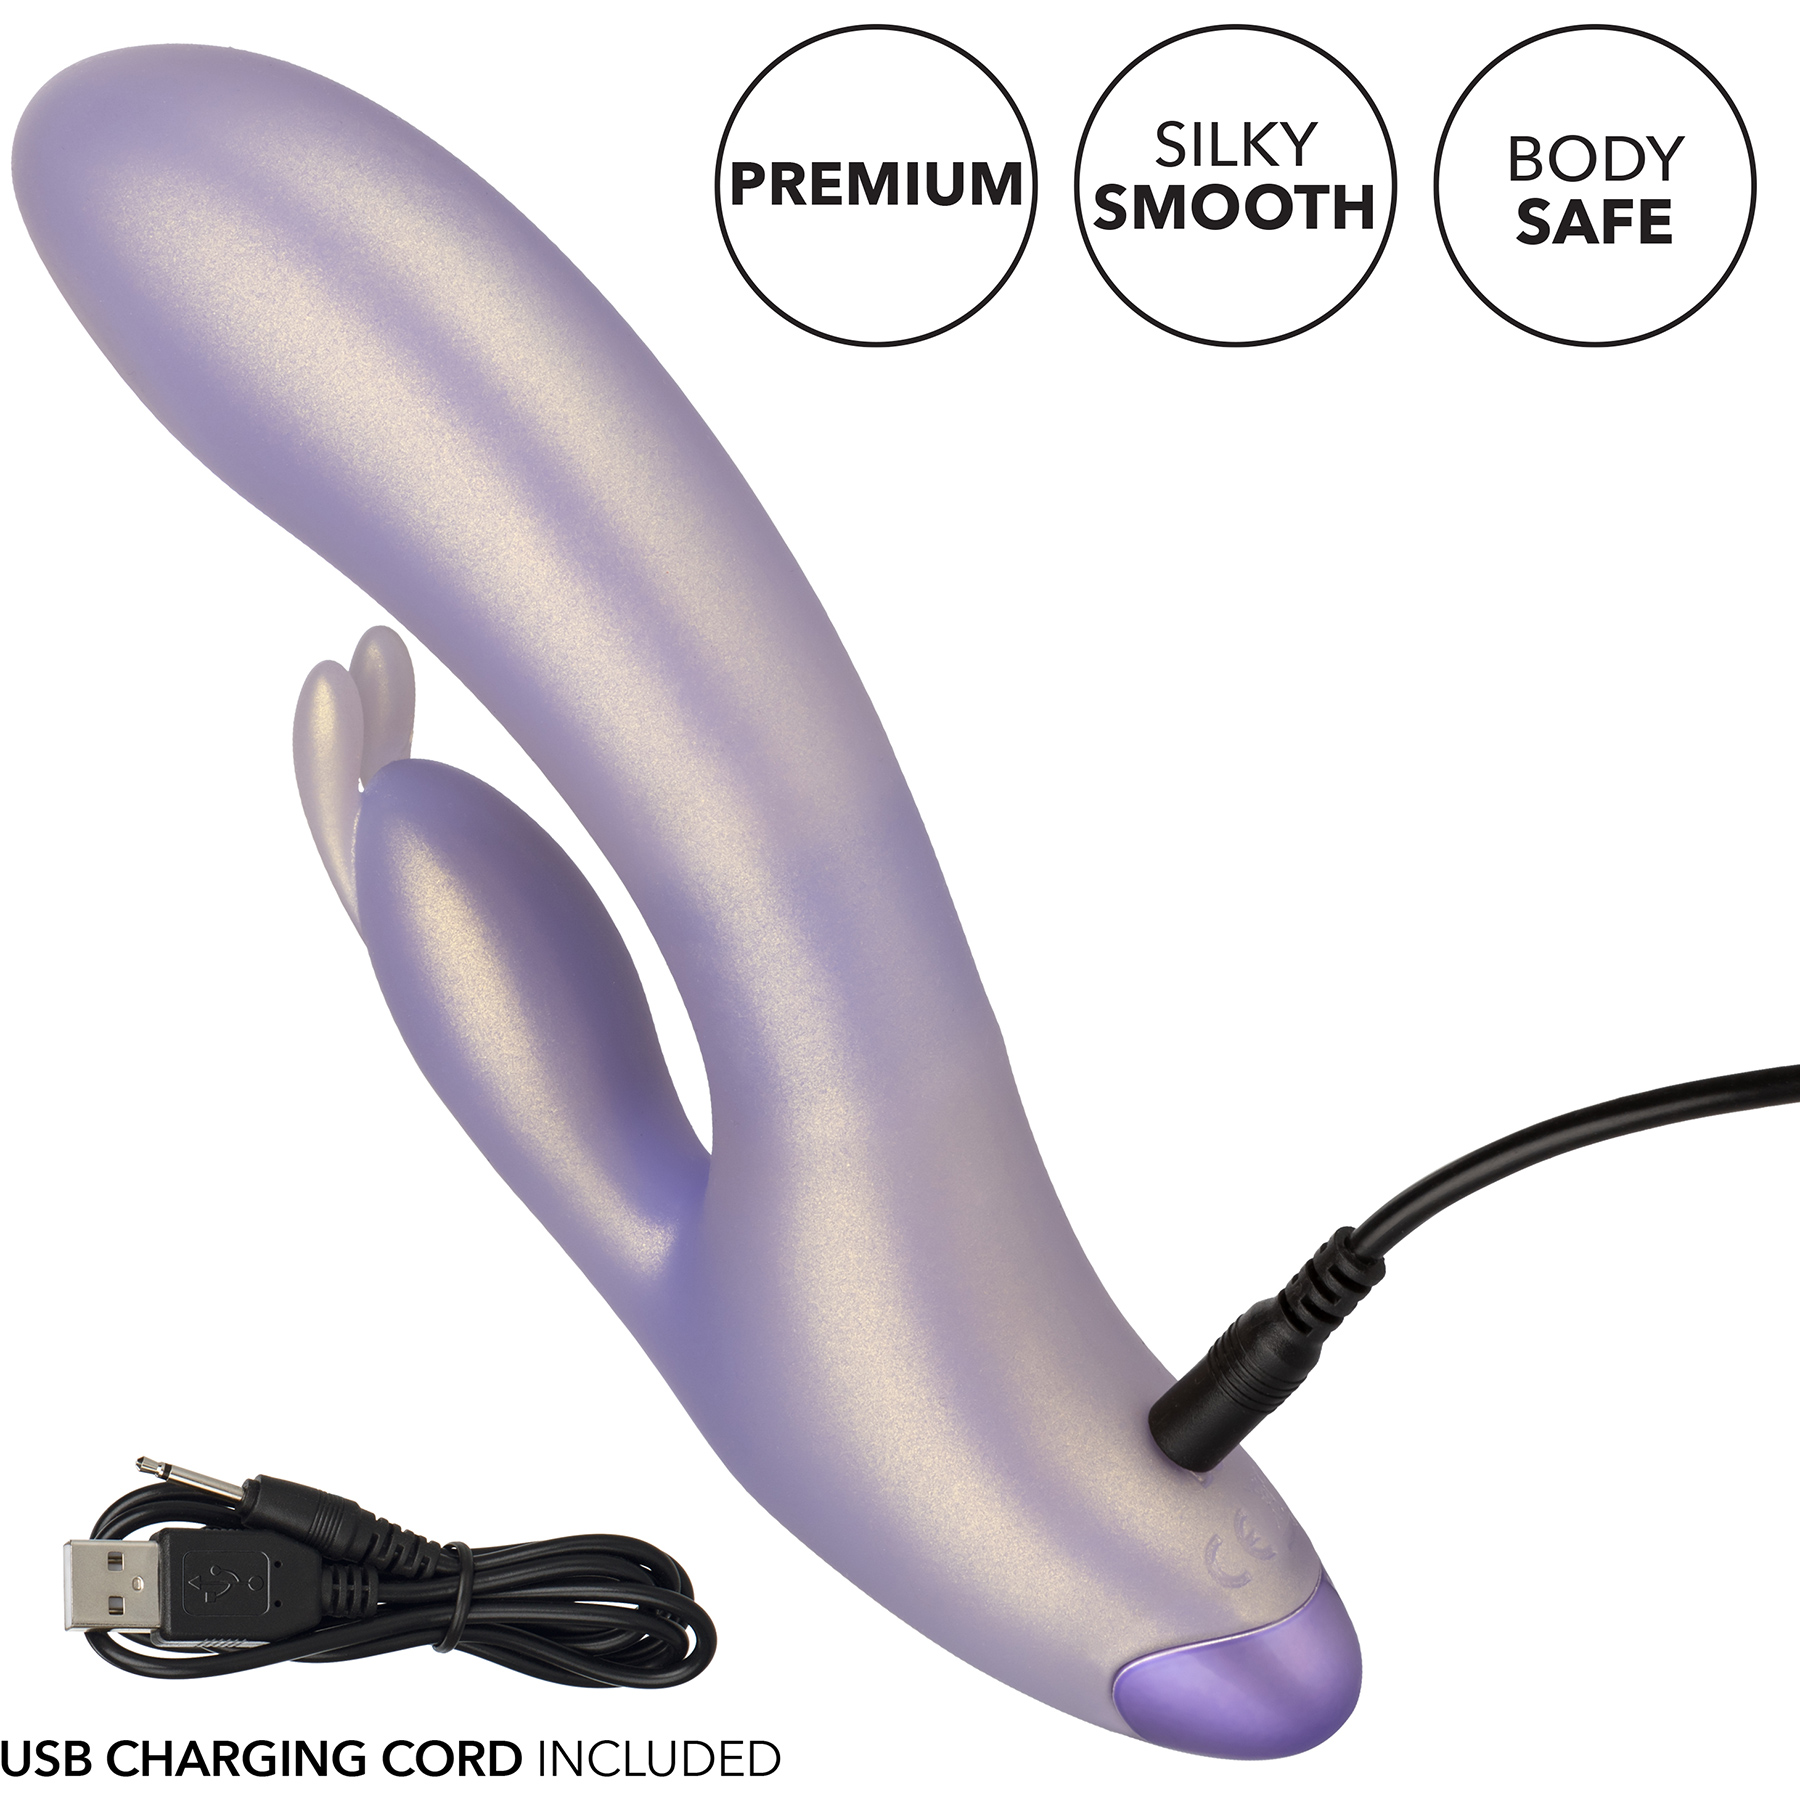 G-Love G-Bunny Silicone Rechargeable Waterproof Dual Stimulation Vibrator By CalExotics - Charging